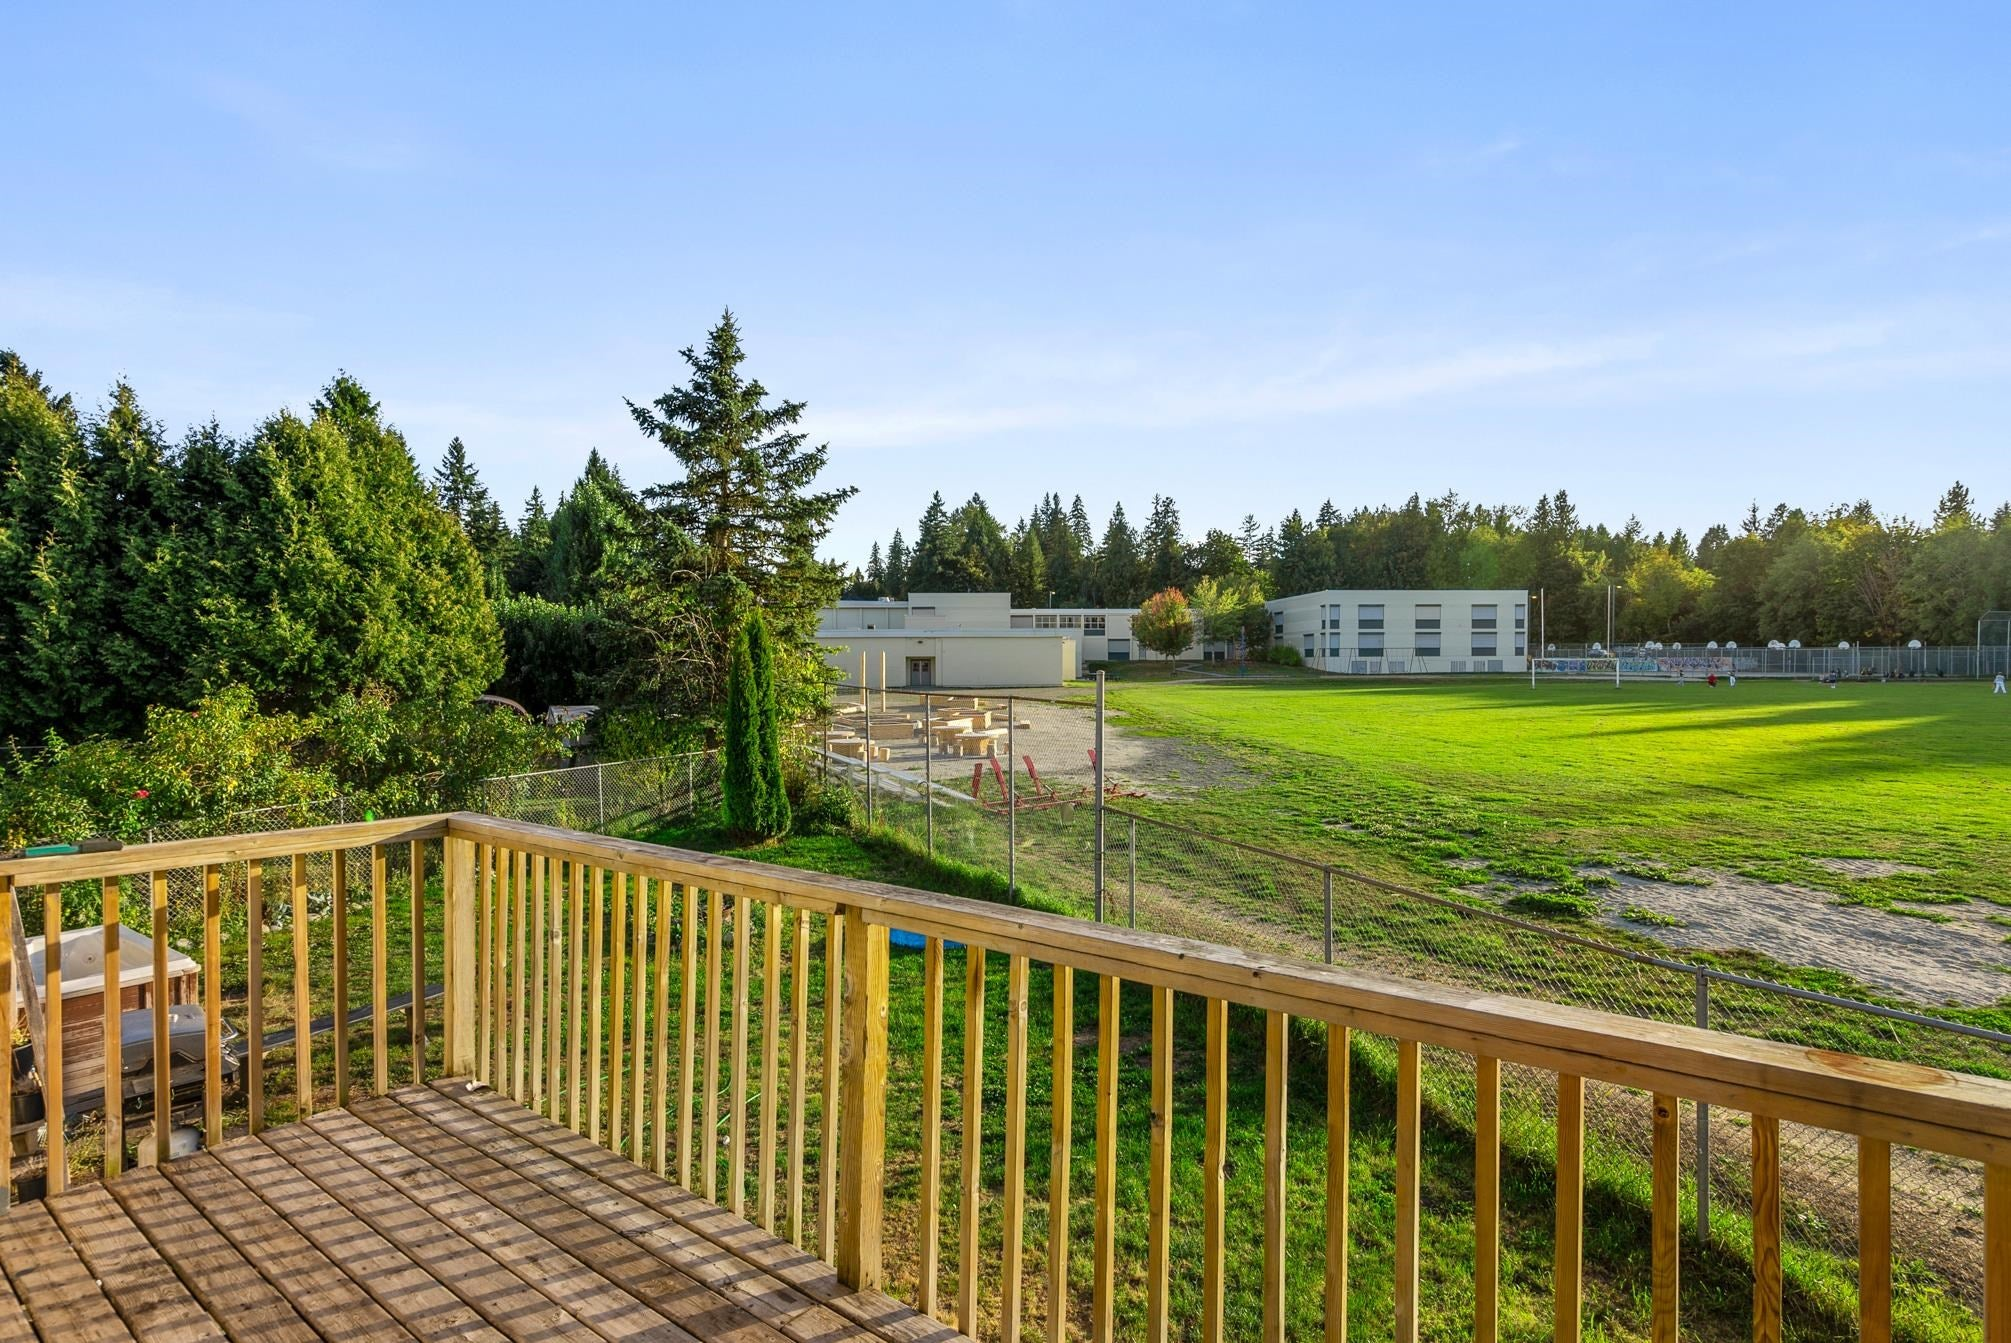 20506 48B AVENUE - Langley City House/Single Family for sale, 4 Bedrooms (R2614937) - #22